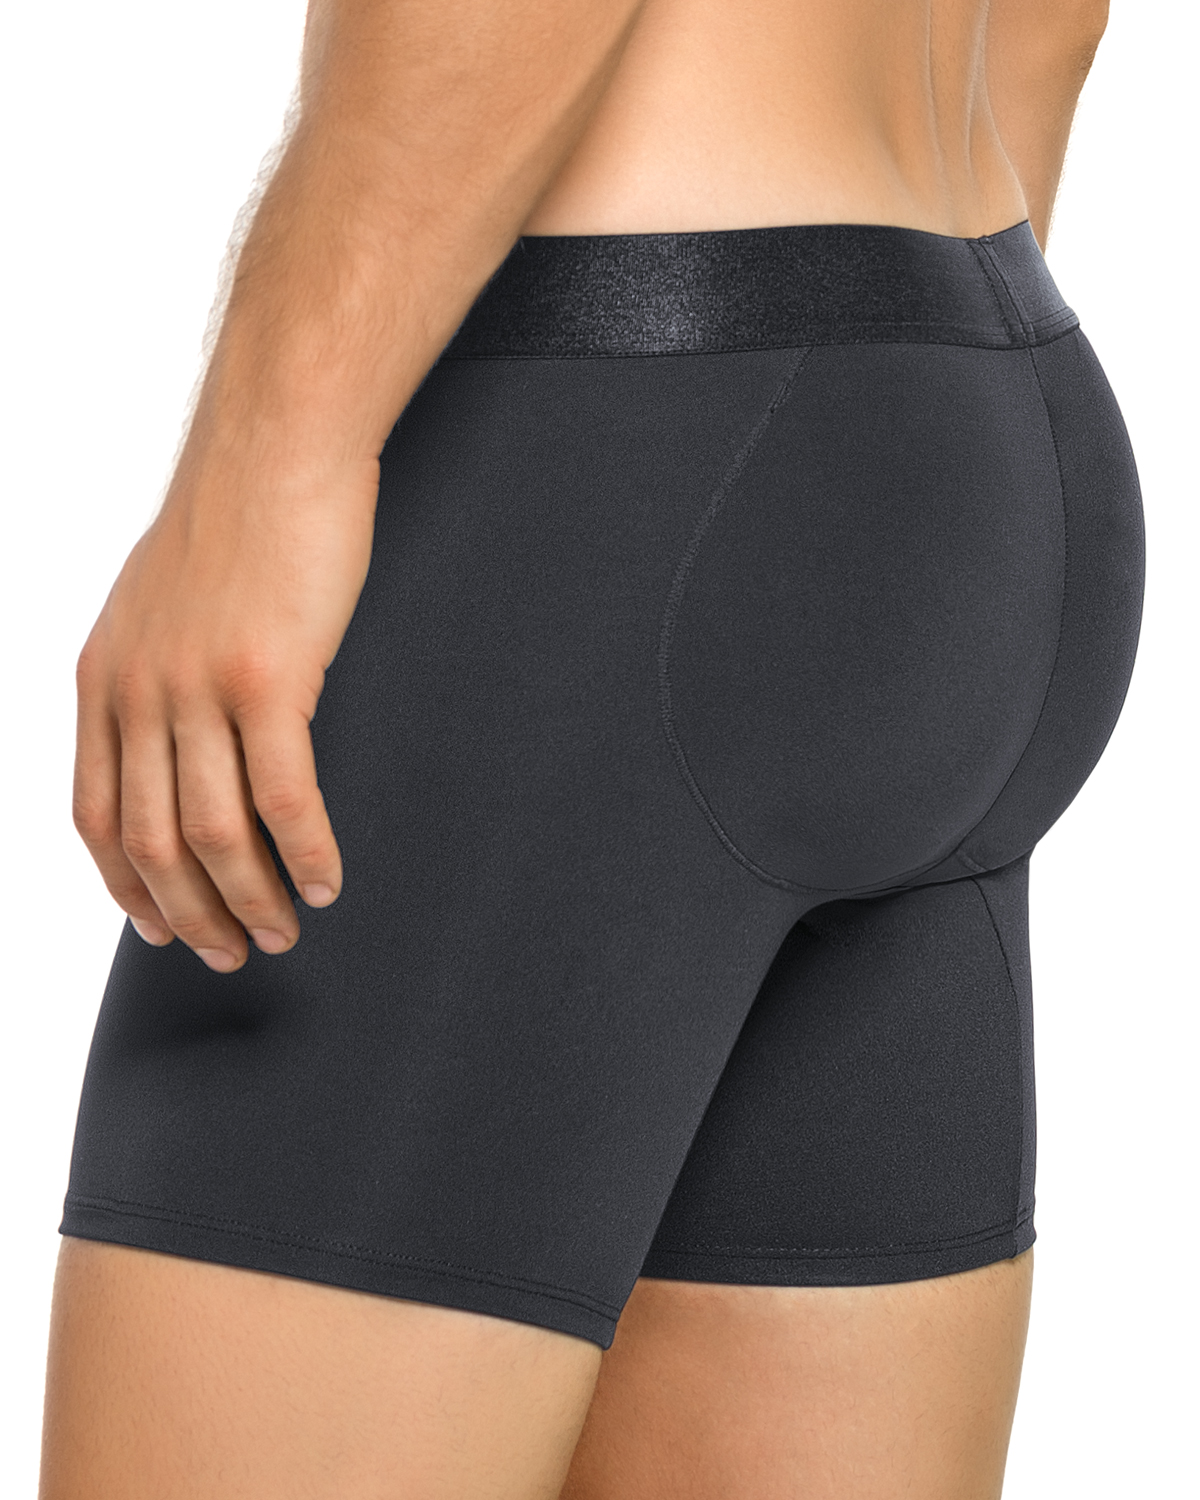 leo mens padded butt enhancer boxer brief-700- Black-MainImage